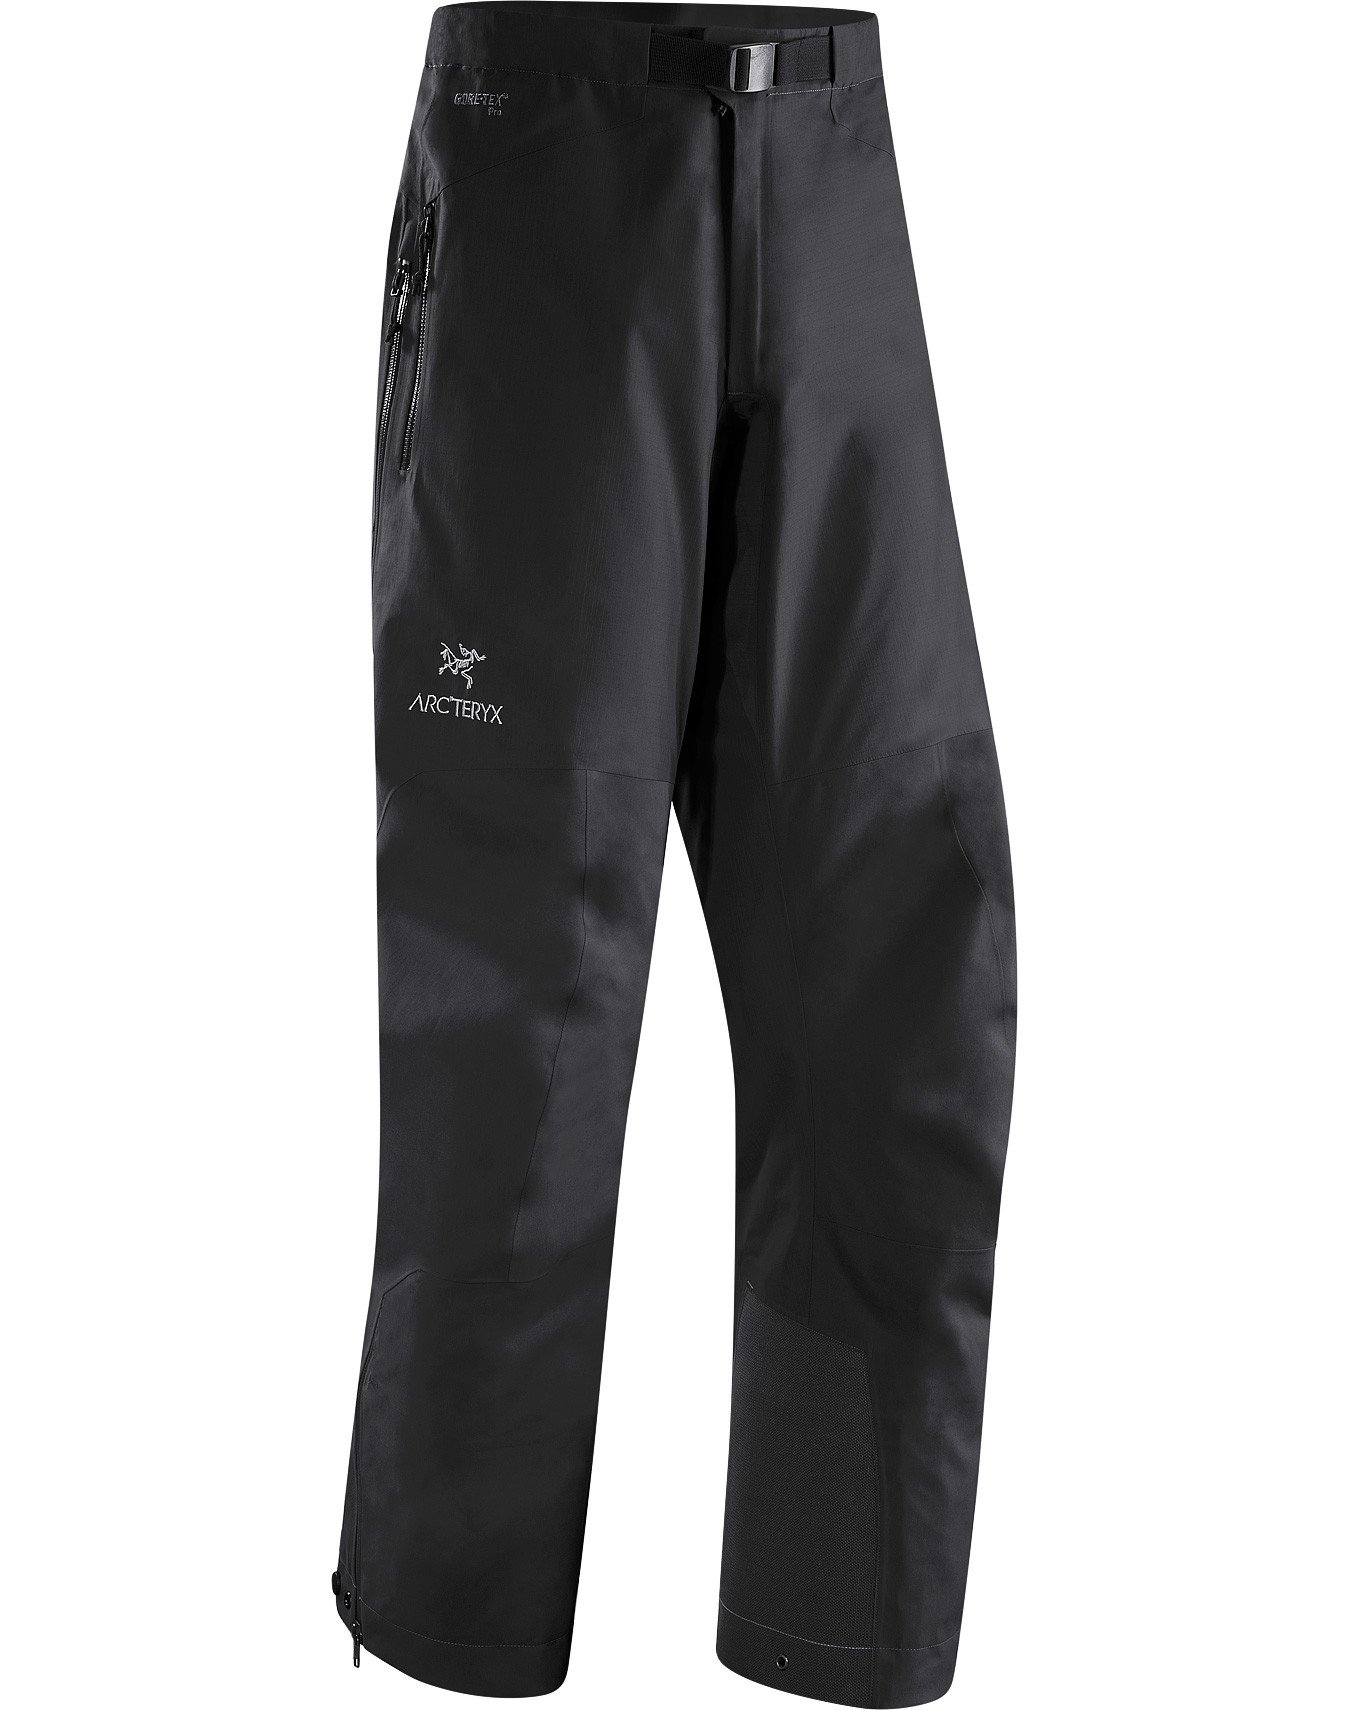 51132bbb Arc'teryx Beta AR Pant Men's Black | Fjellsport.no